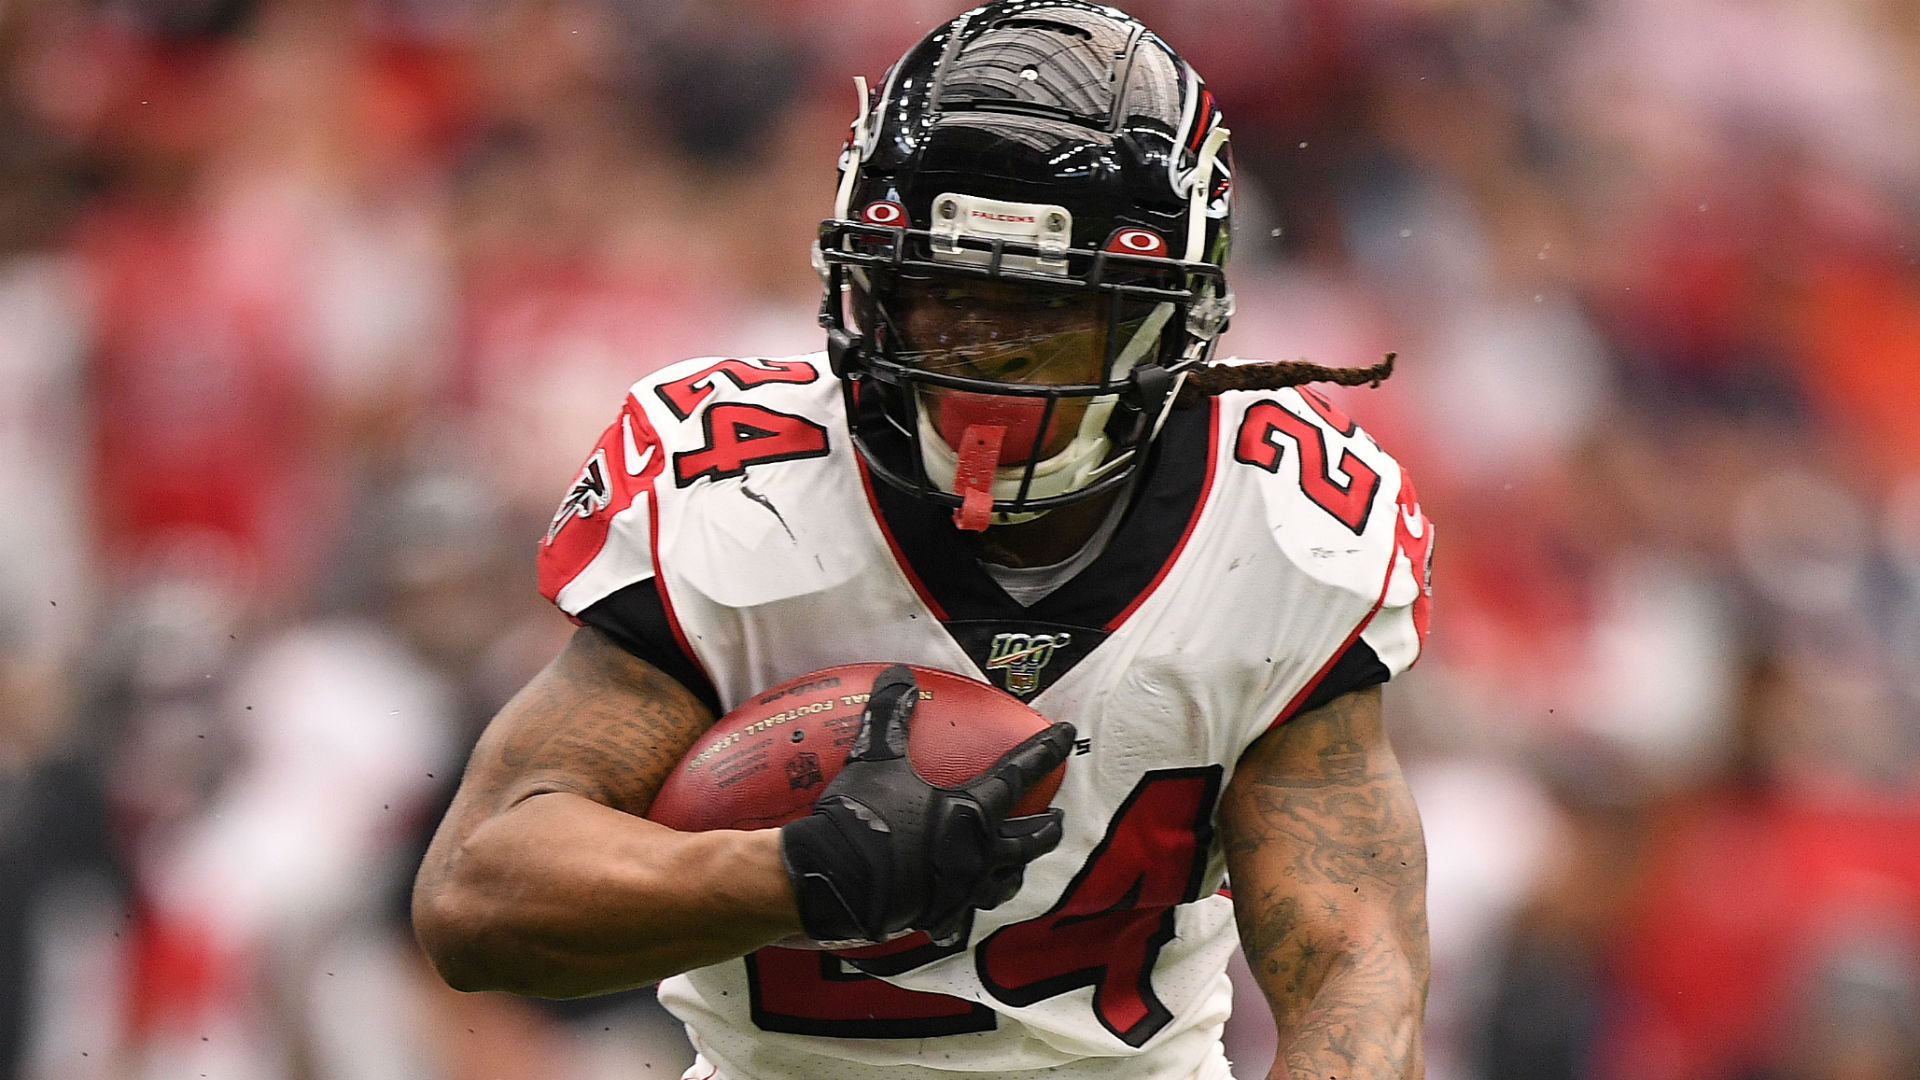 'F all y'all!': Devonta Freeman responds to NFL retirement rumors 1